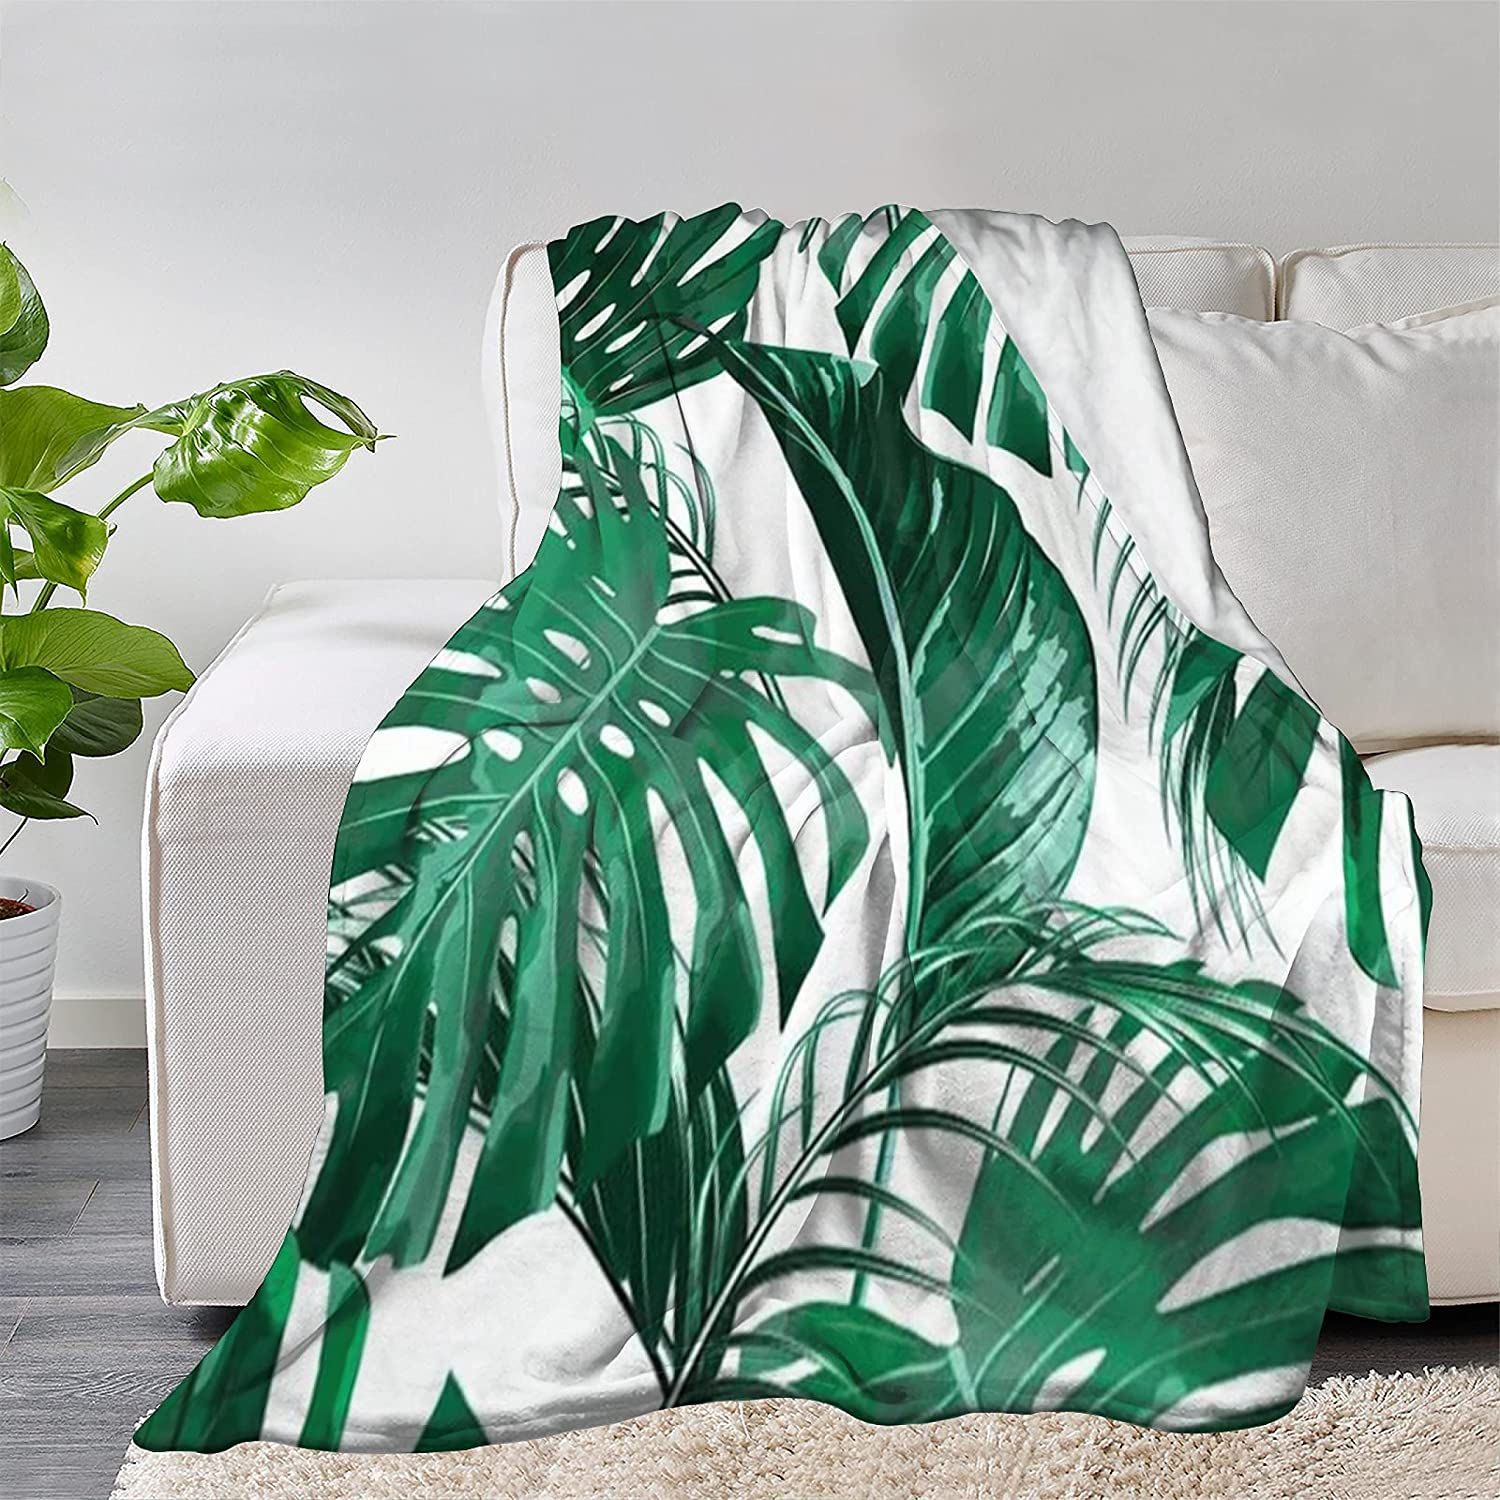 FUNDESIGN Leaves Flannel Throw Blanket Ultra M Soft Free Shipping Cheap Bargain Gift Over item handling ☆ Lightweight